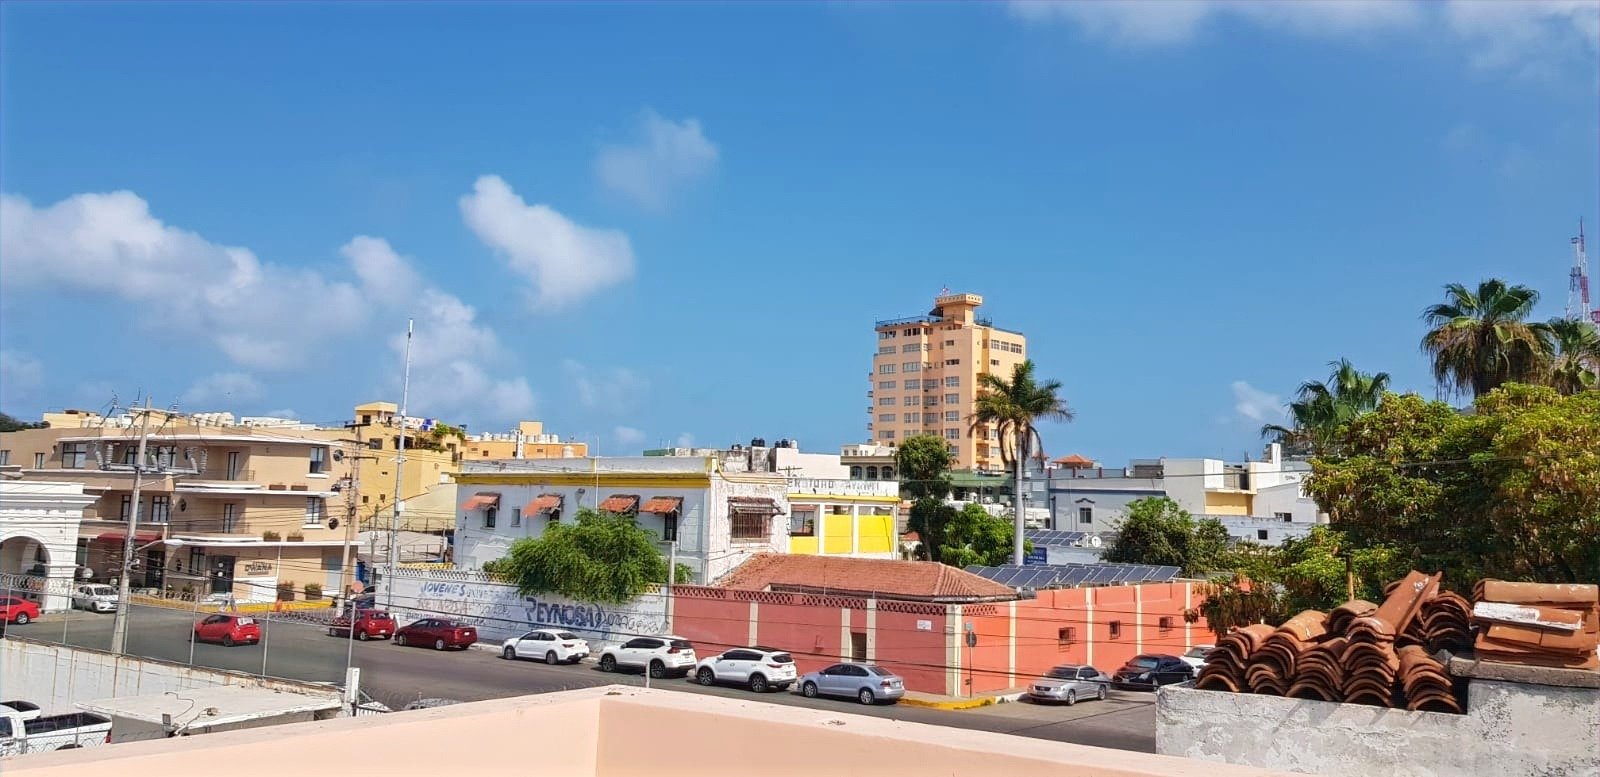 View from roof-top to Olas Altas.